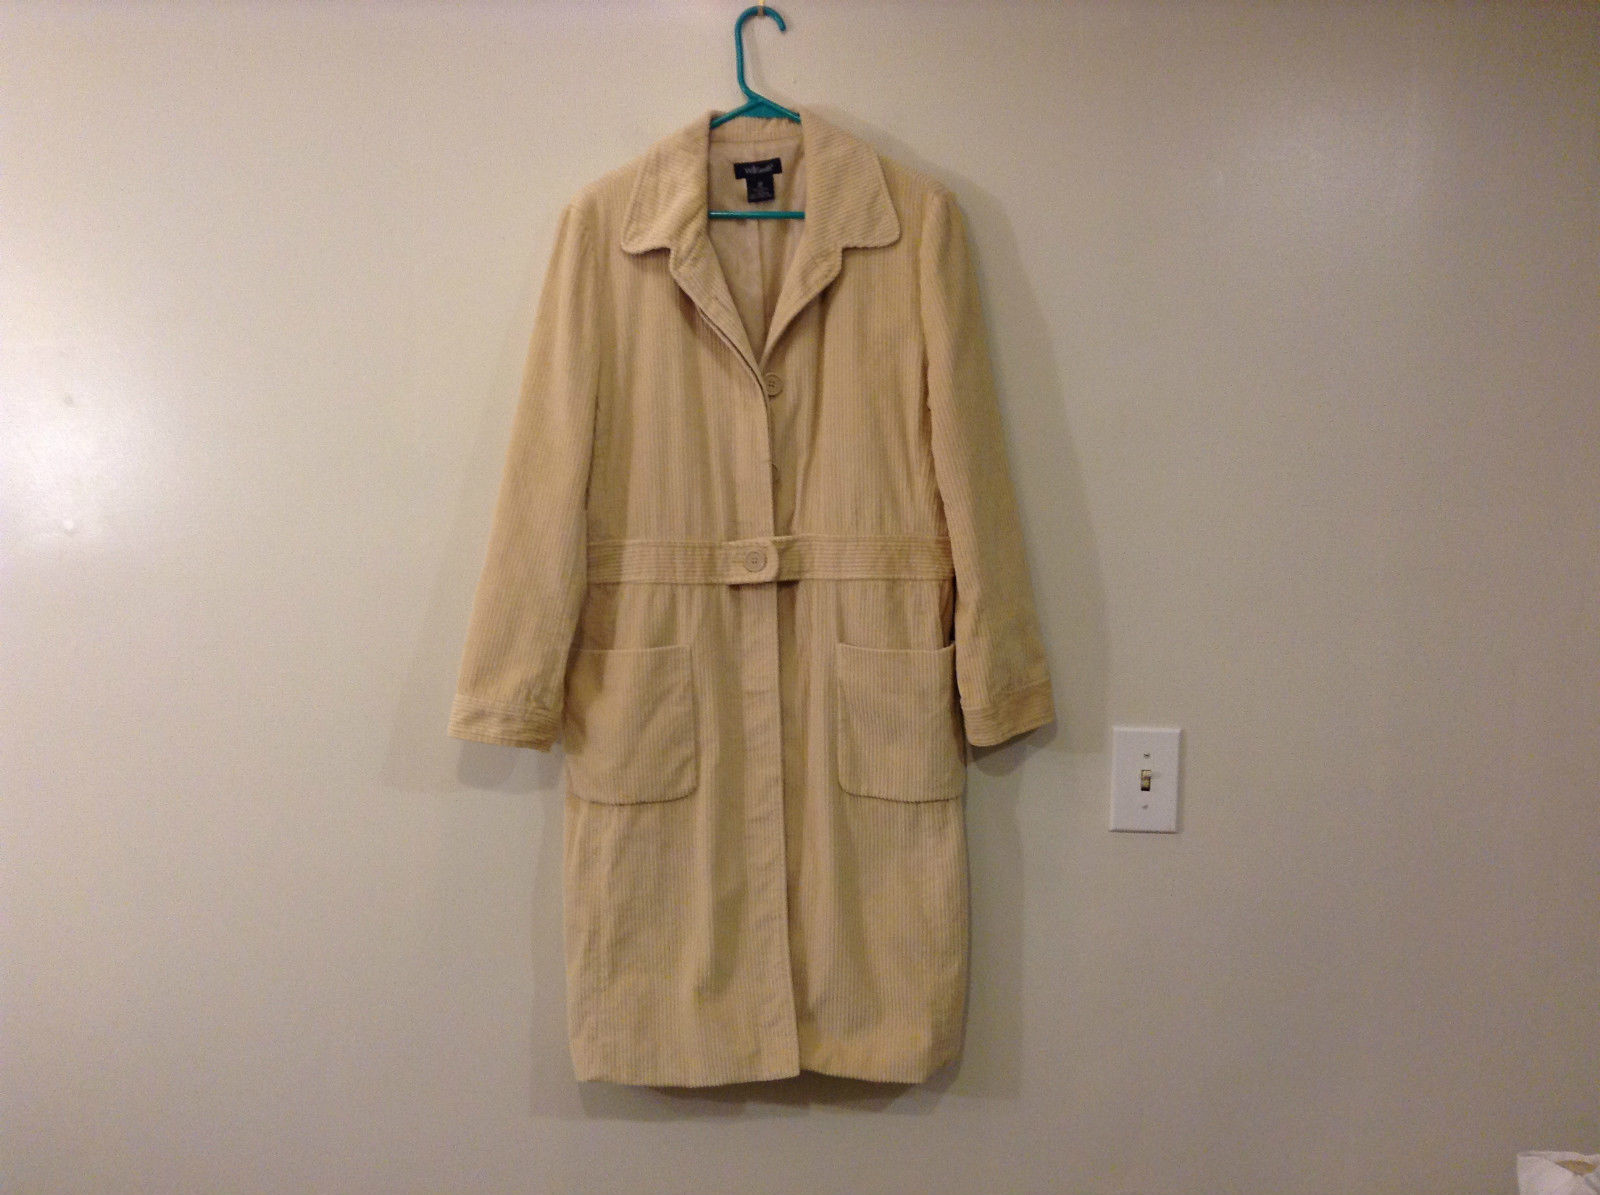 Light Beige Cream Fully Lined Willi Smith Light Coat sz 10 Buttons corduroy